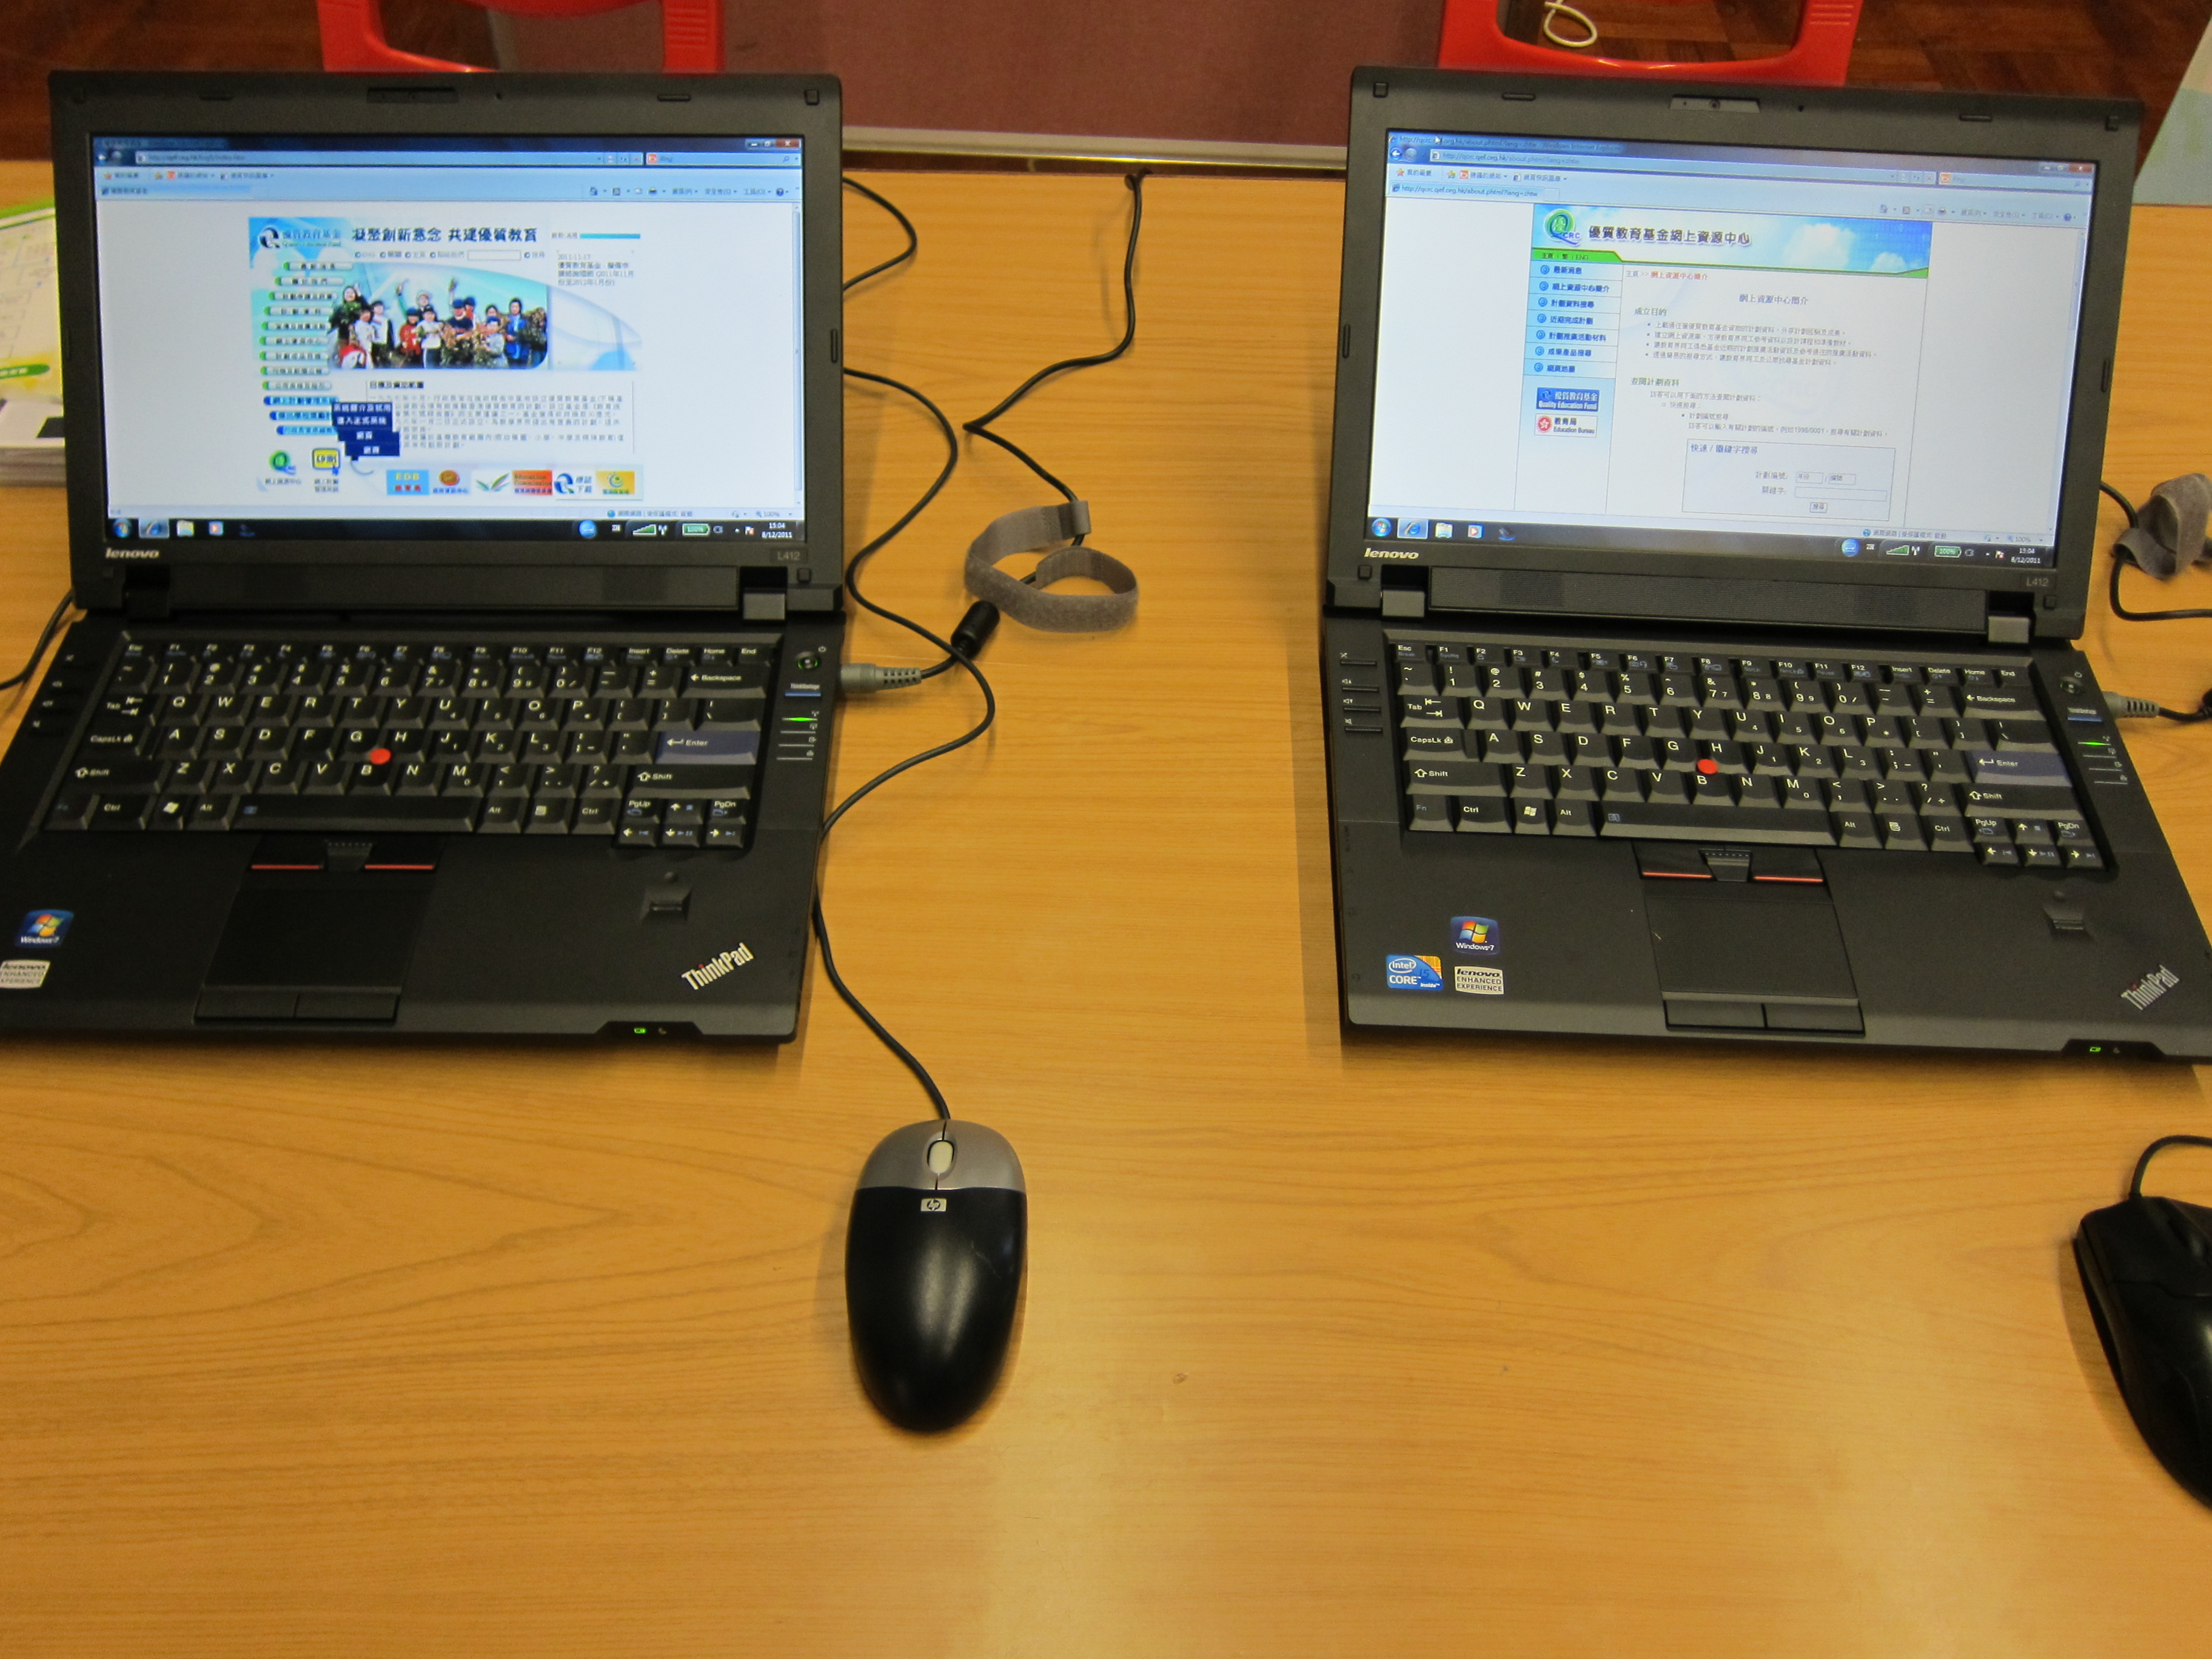 Use of New Technology for School Administrative Work (9 Oct 2009)